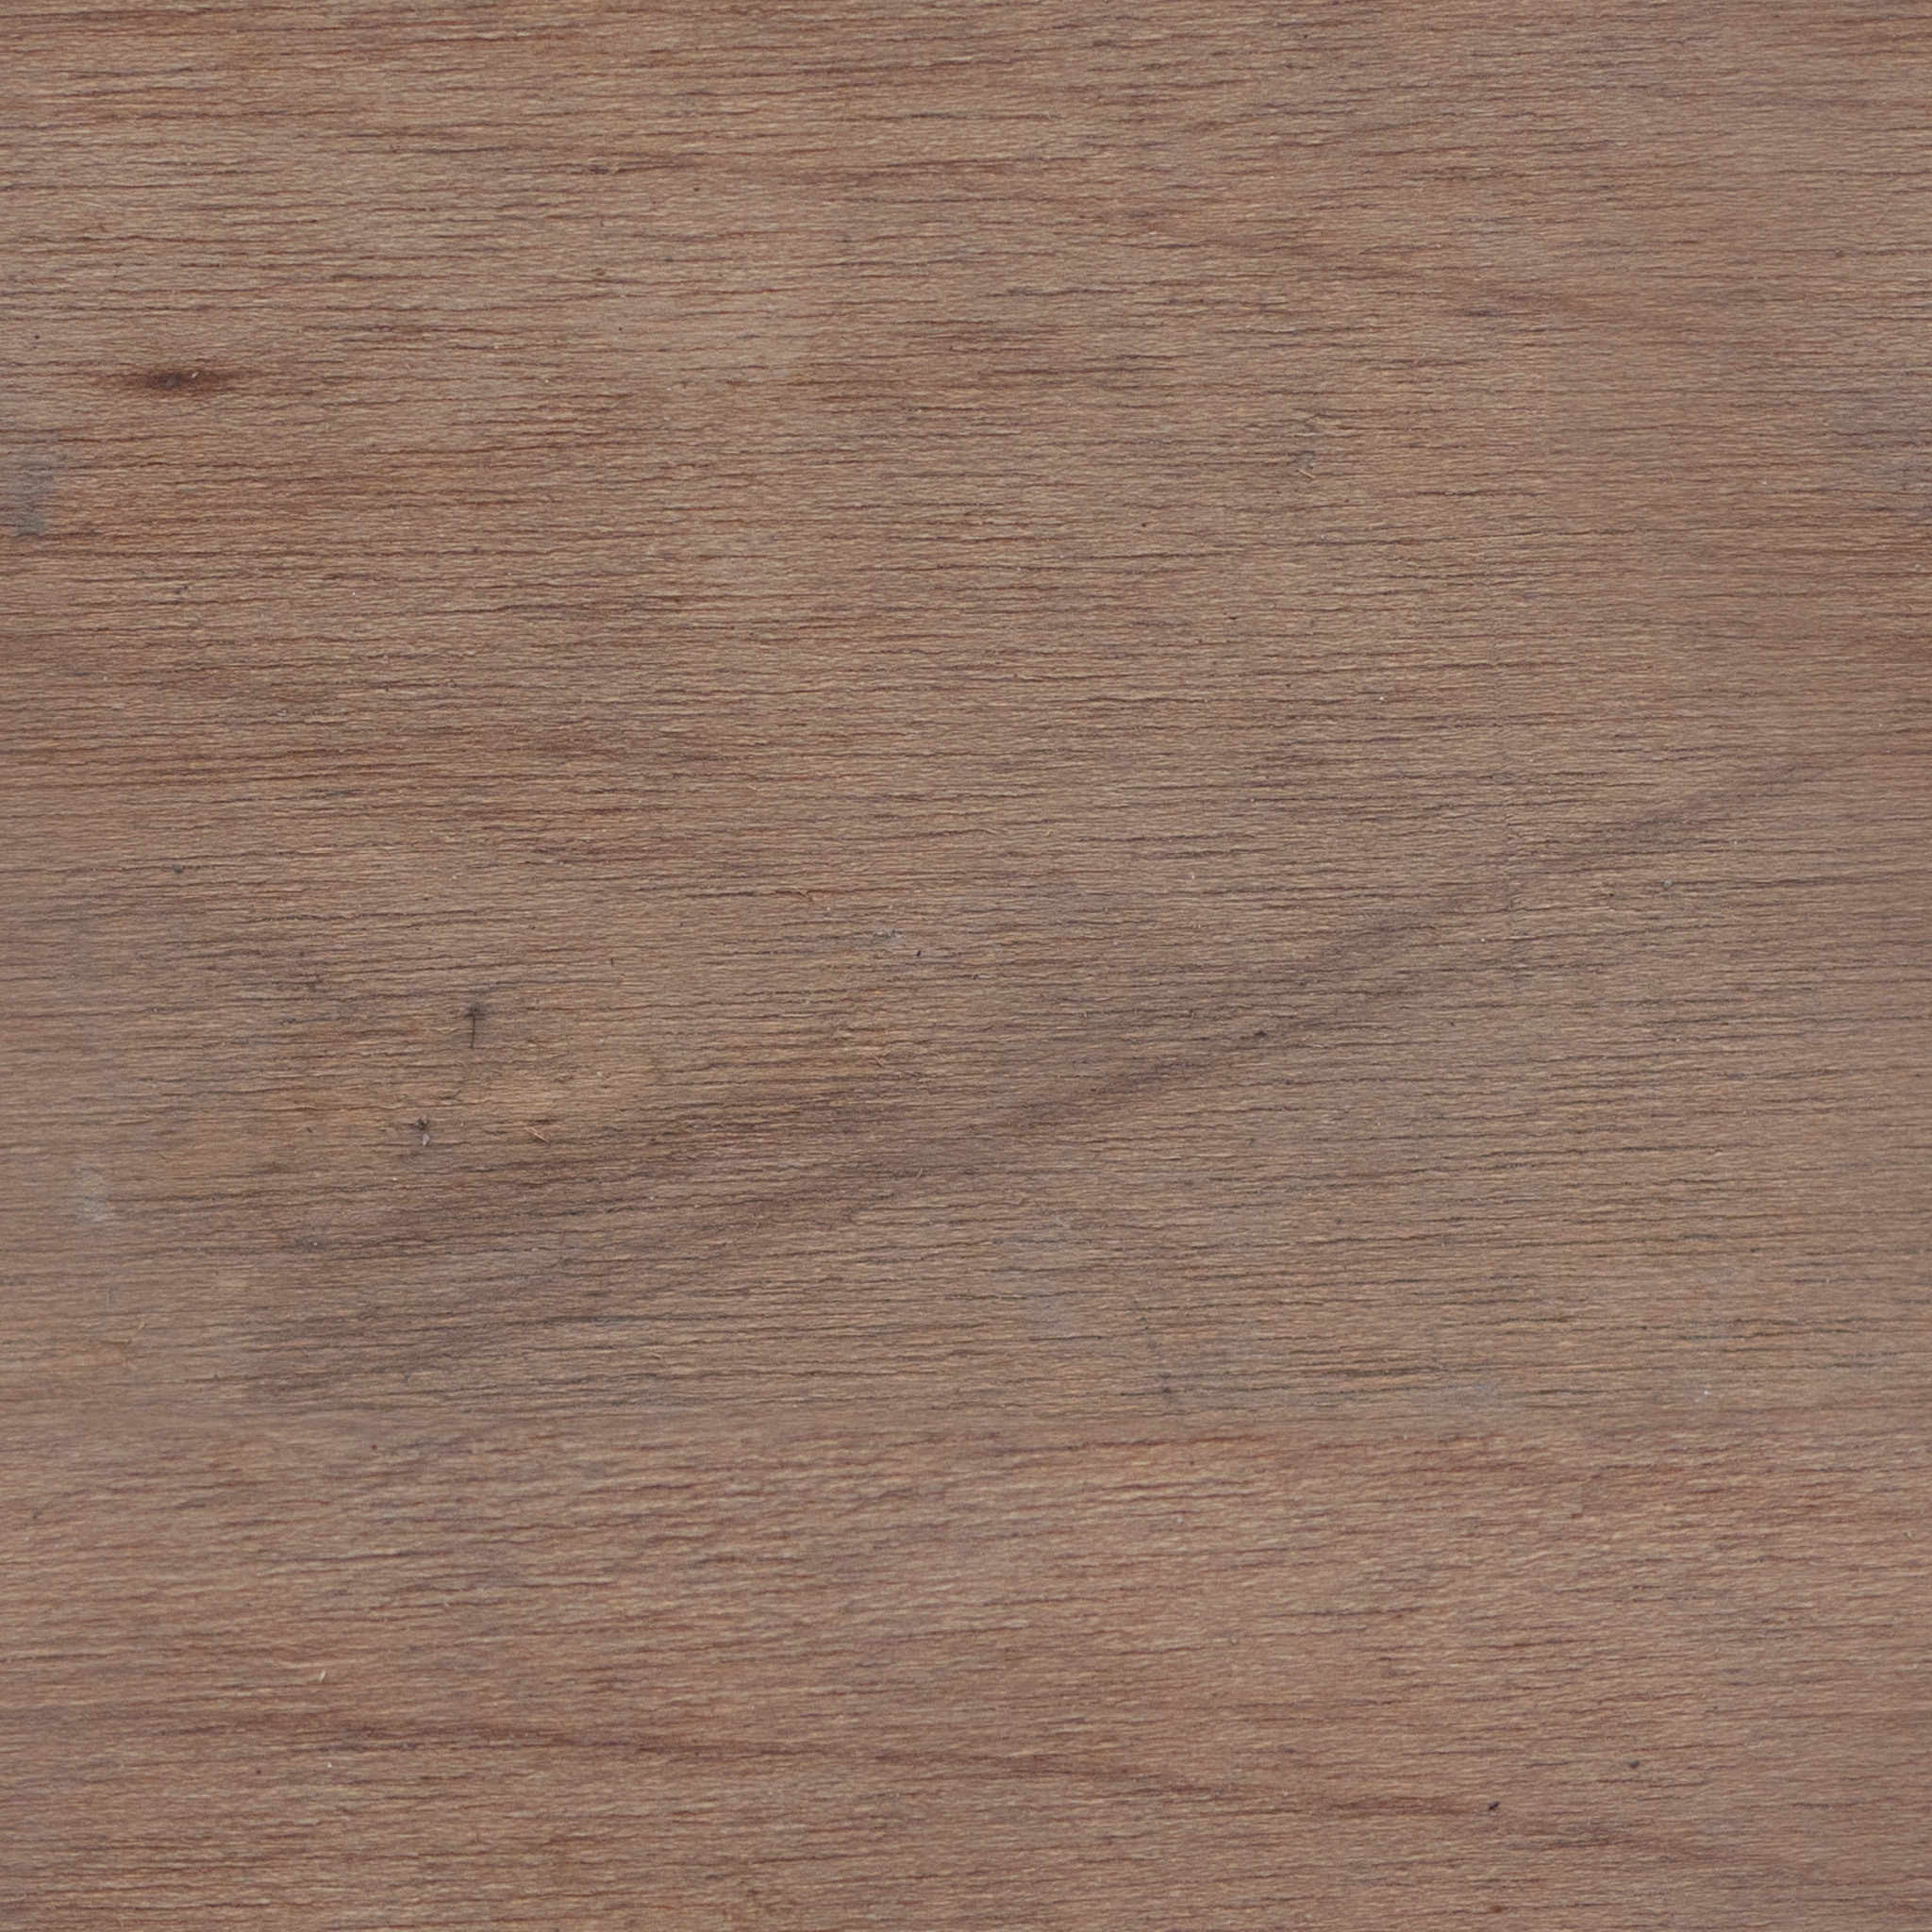 Asian Tan Wood.jpg